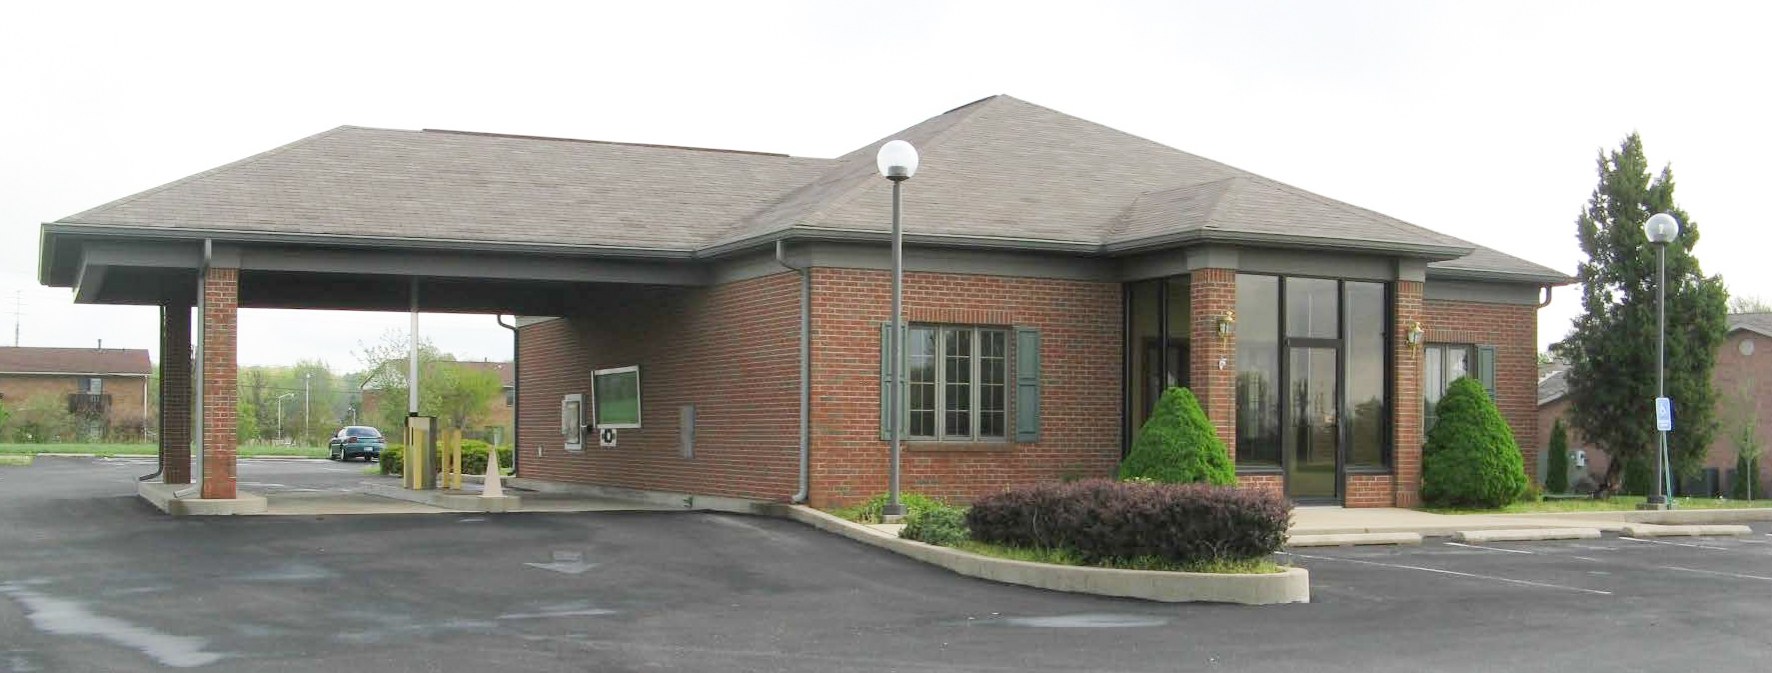 Jefferson Community Federal Credit Union